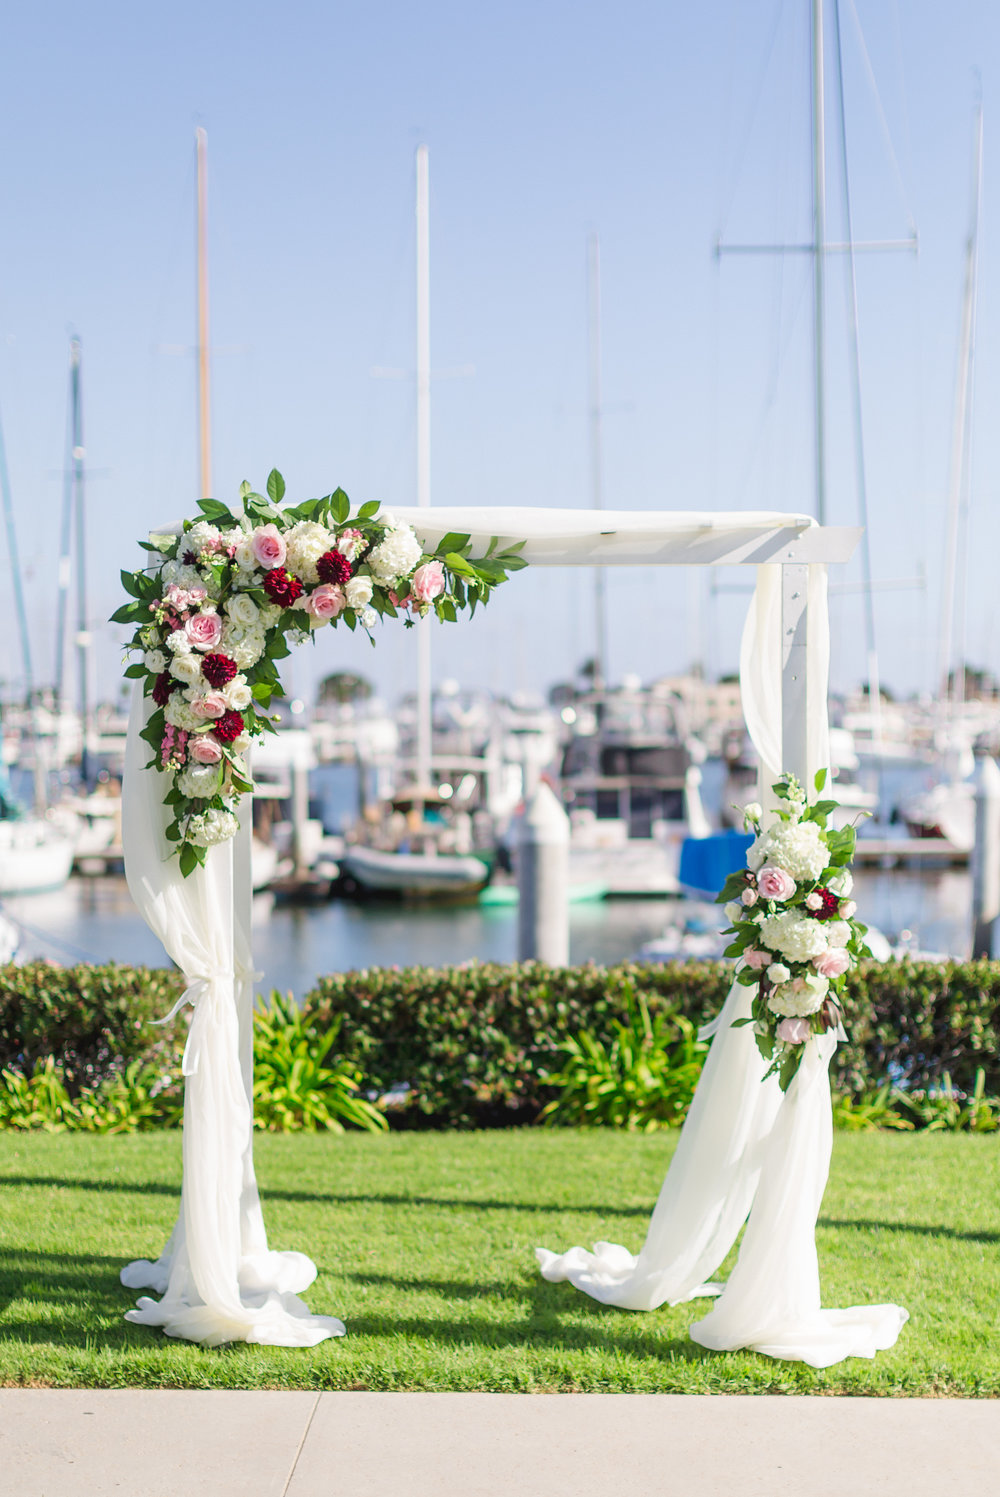 Becca_Mark_Southwestern_Yacht_Club_Wedding_177.jpg